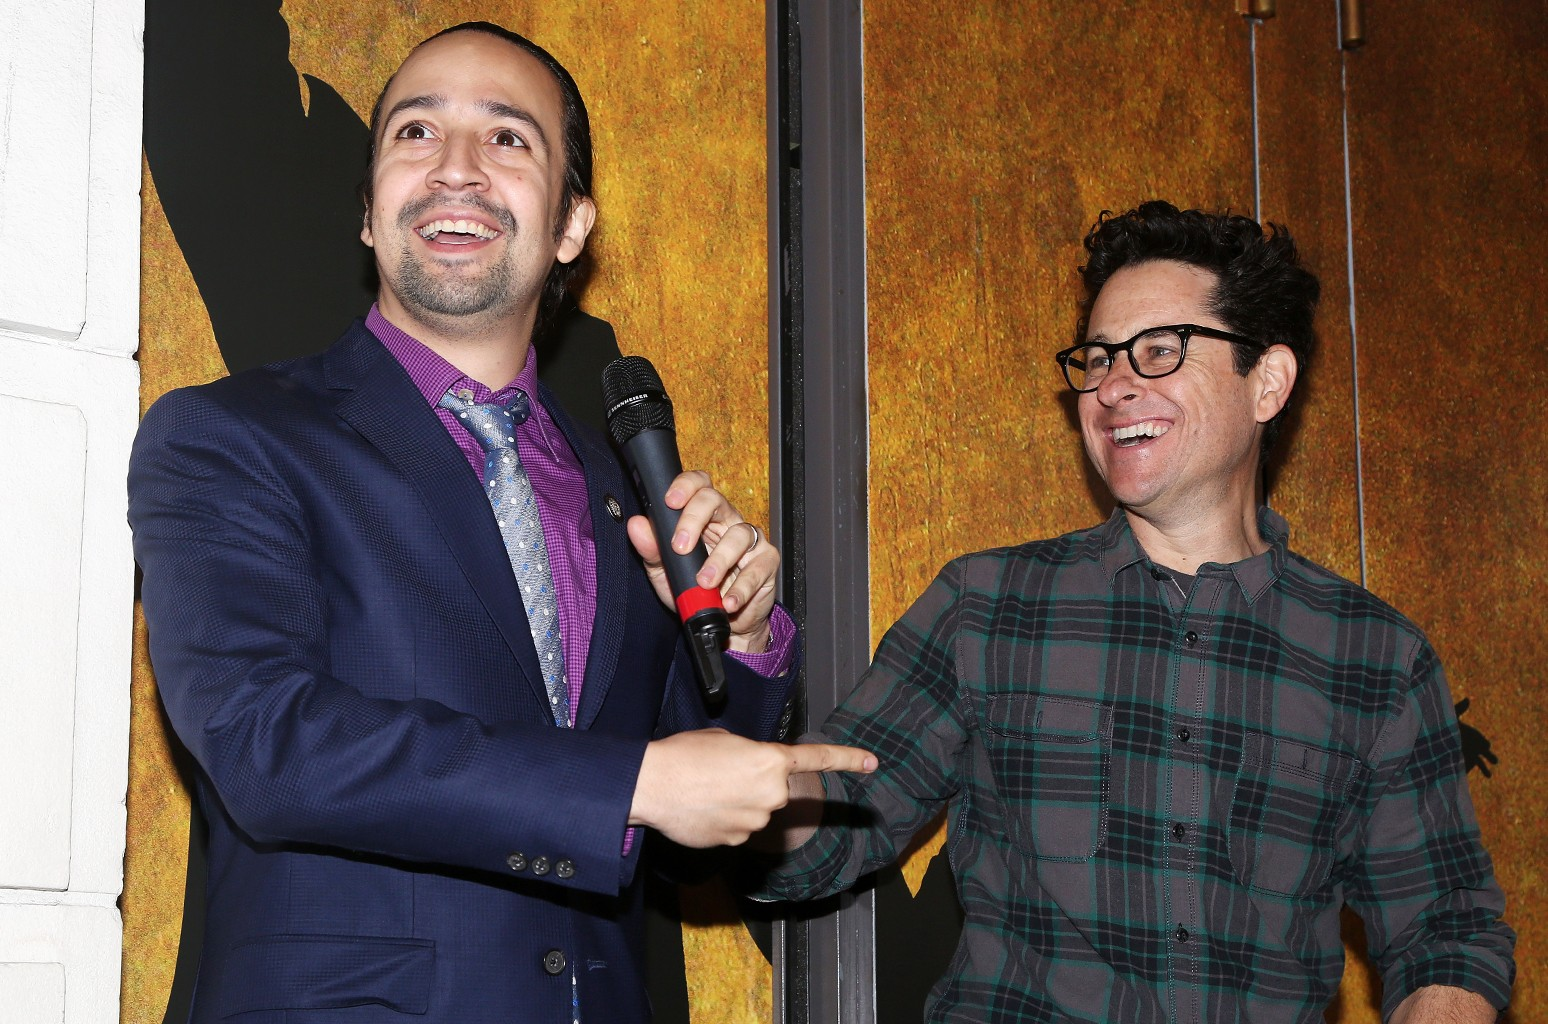 Lin Manuel Miranda and J.J. Abrams perform Broadway 2016